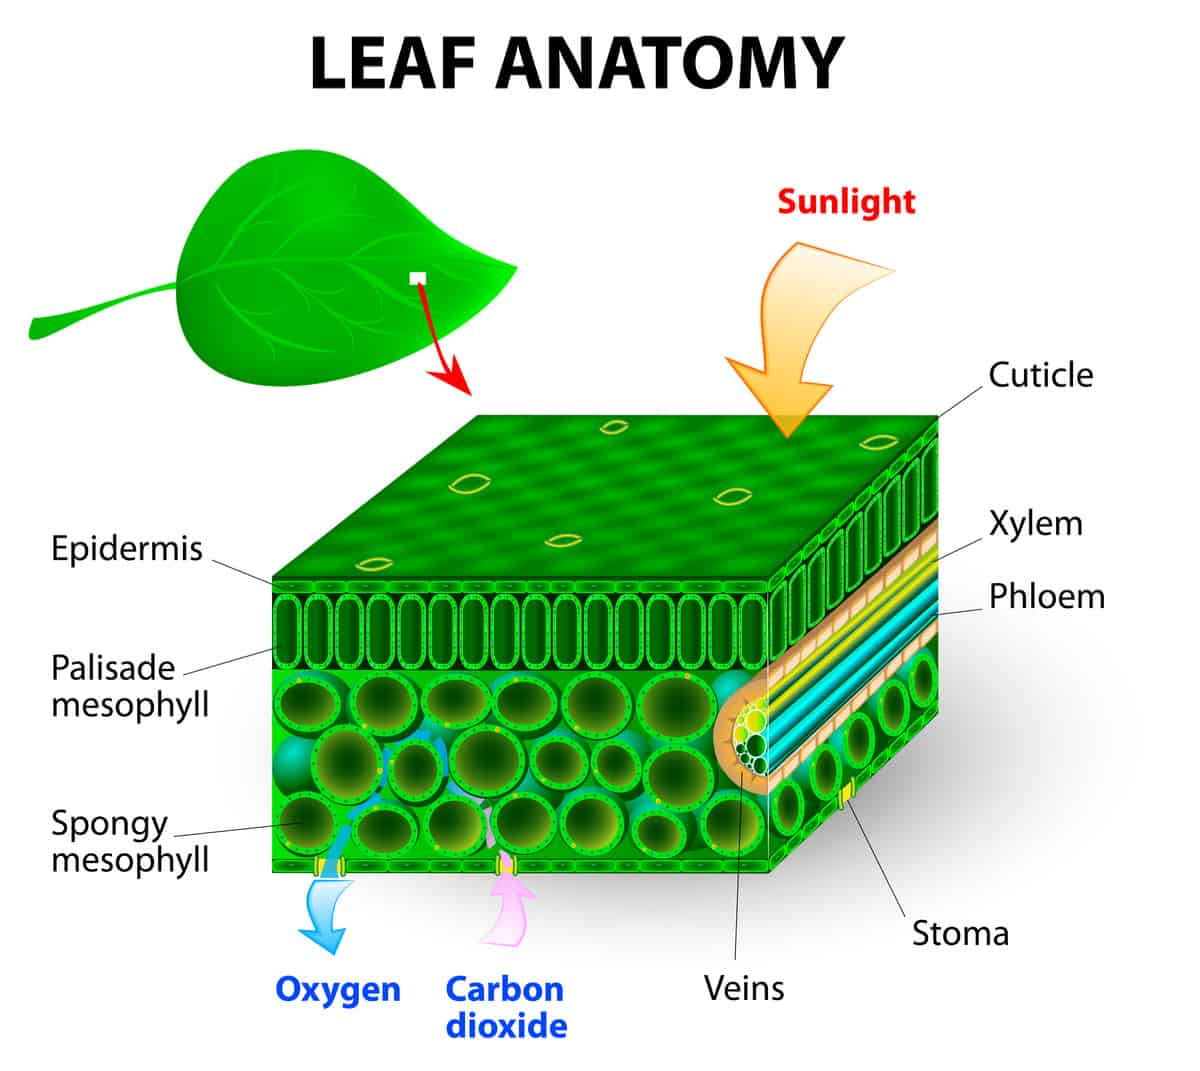 hight resolution of leaf anatomy diagram